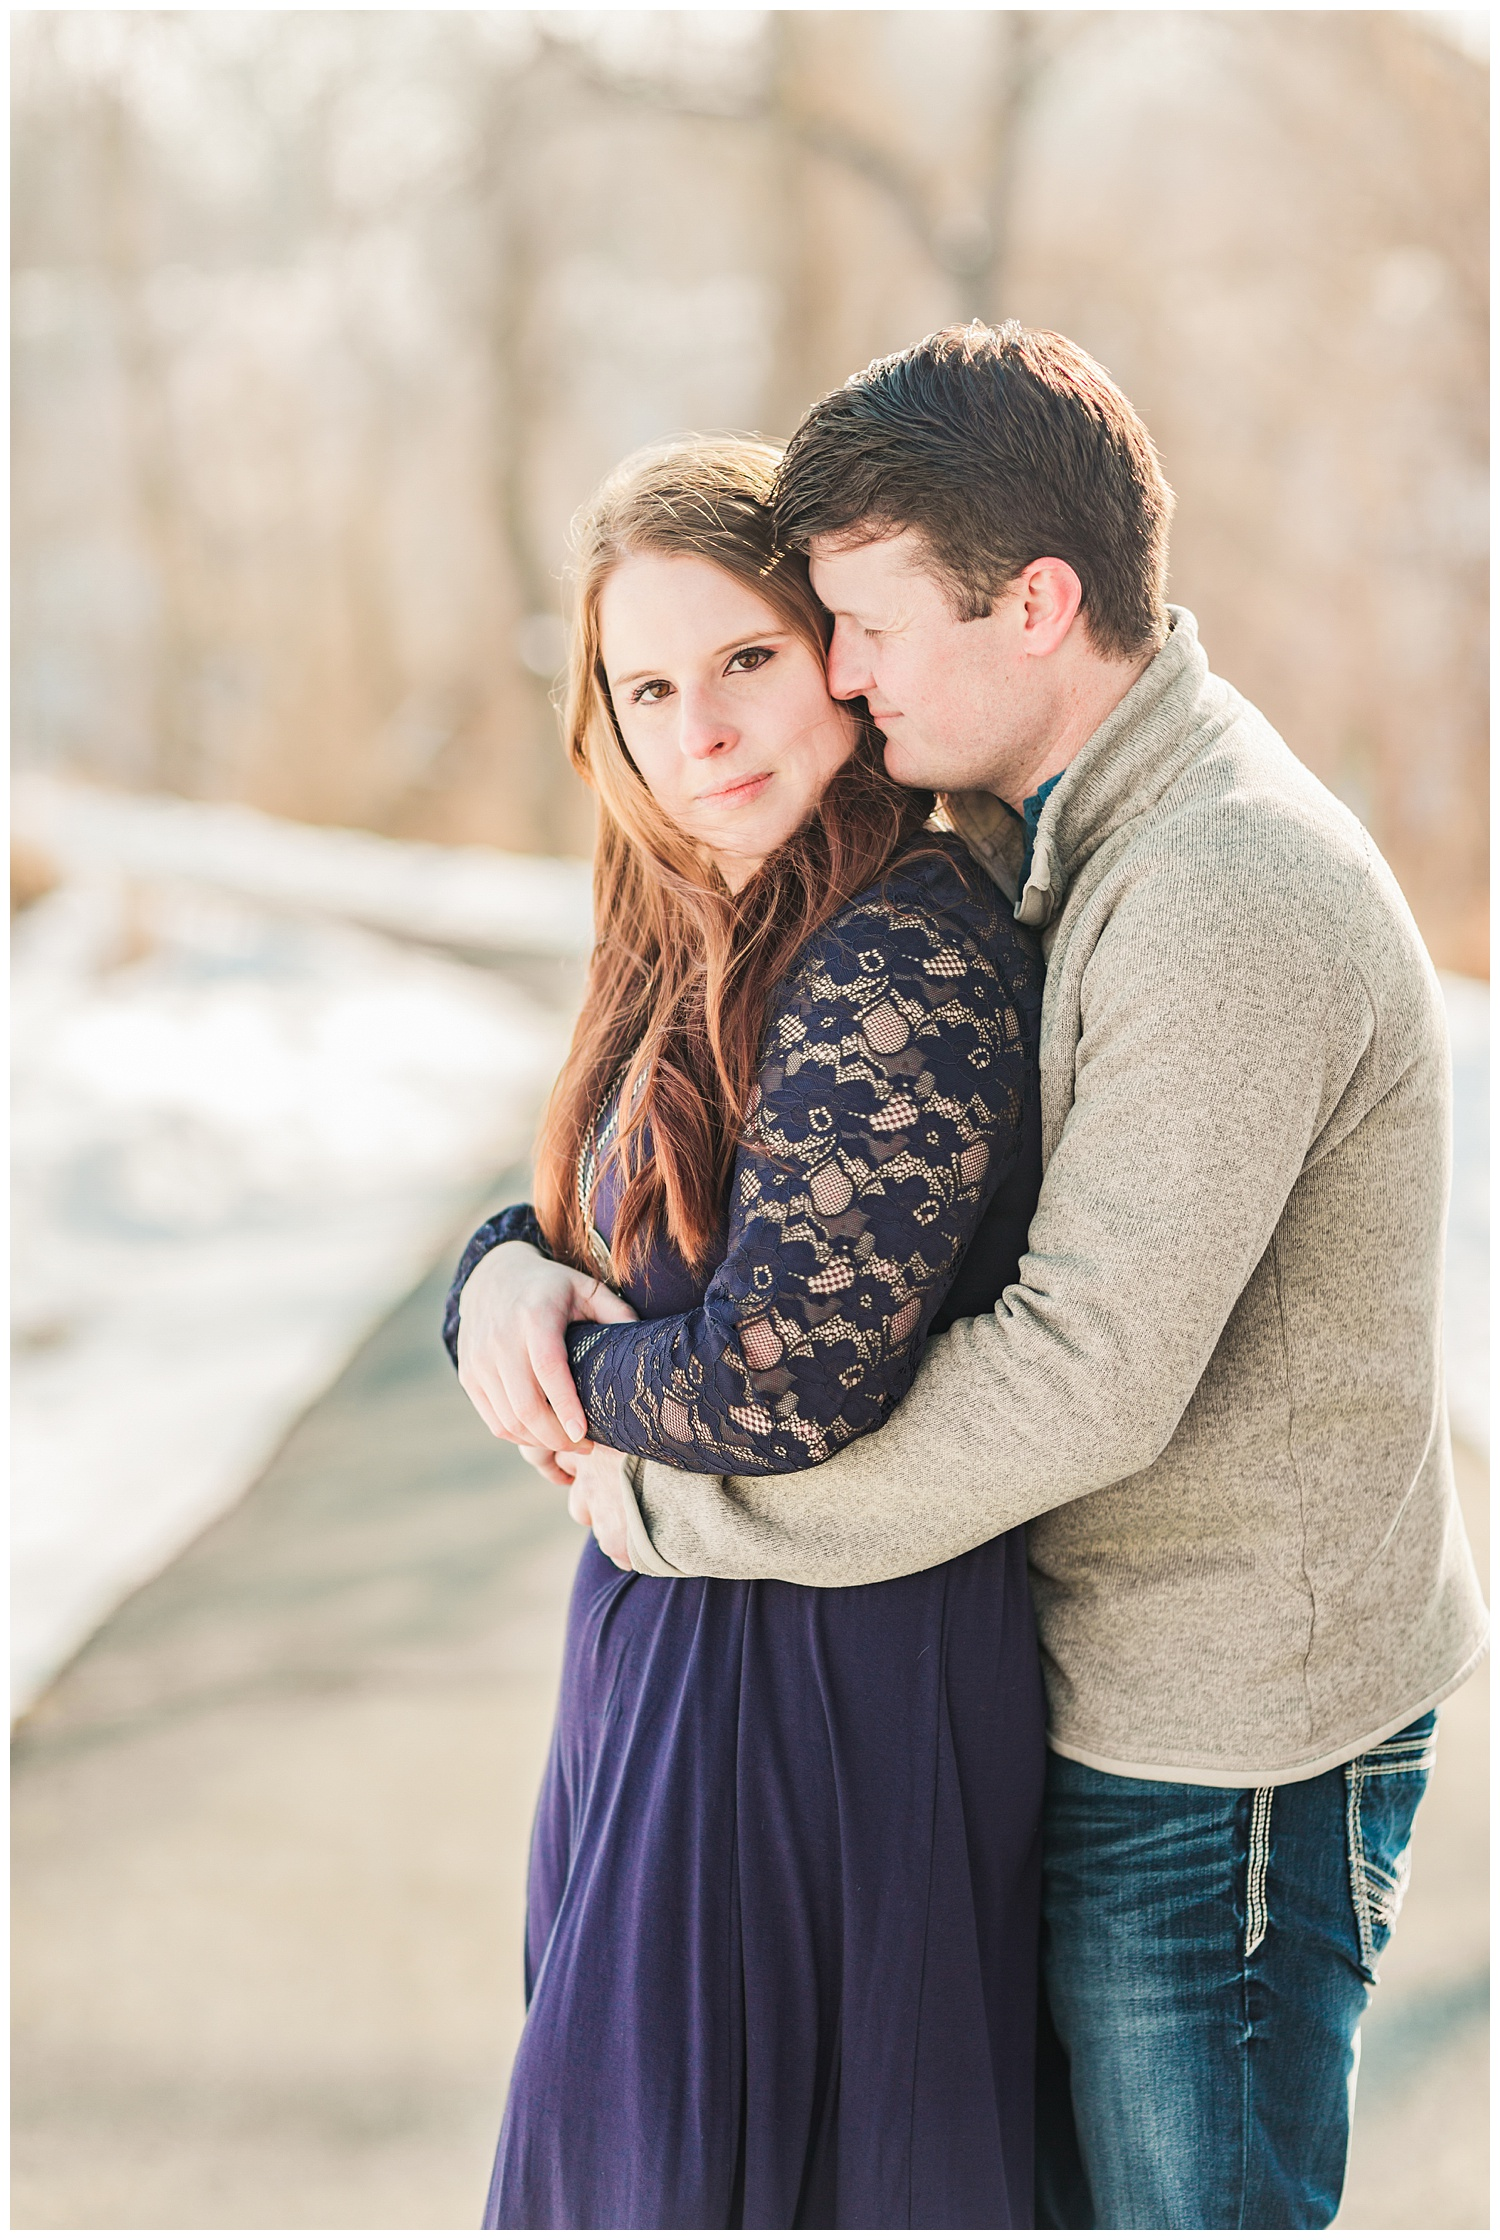 Snowy Engagement Session in Iowa with Hannah and Chris   CB Studio